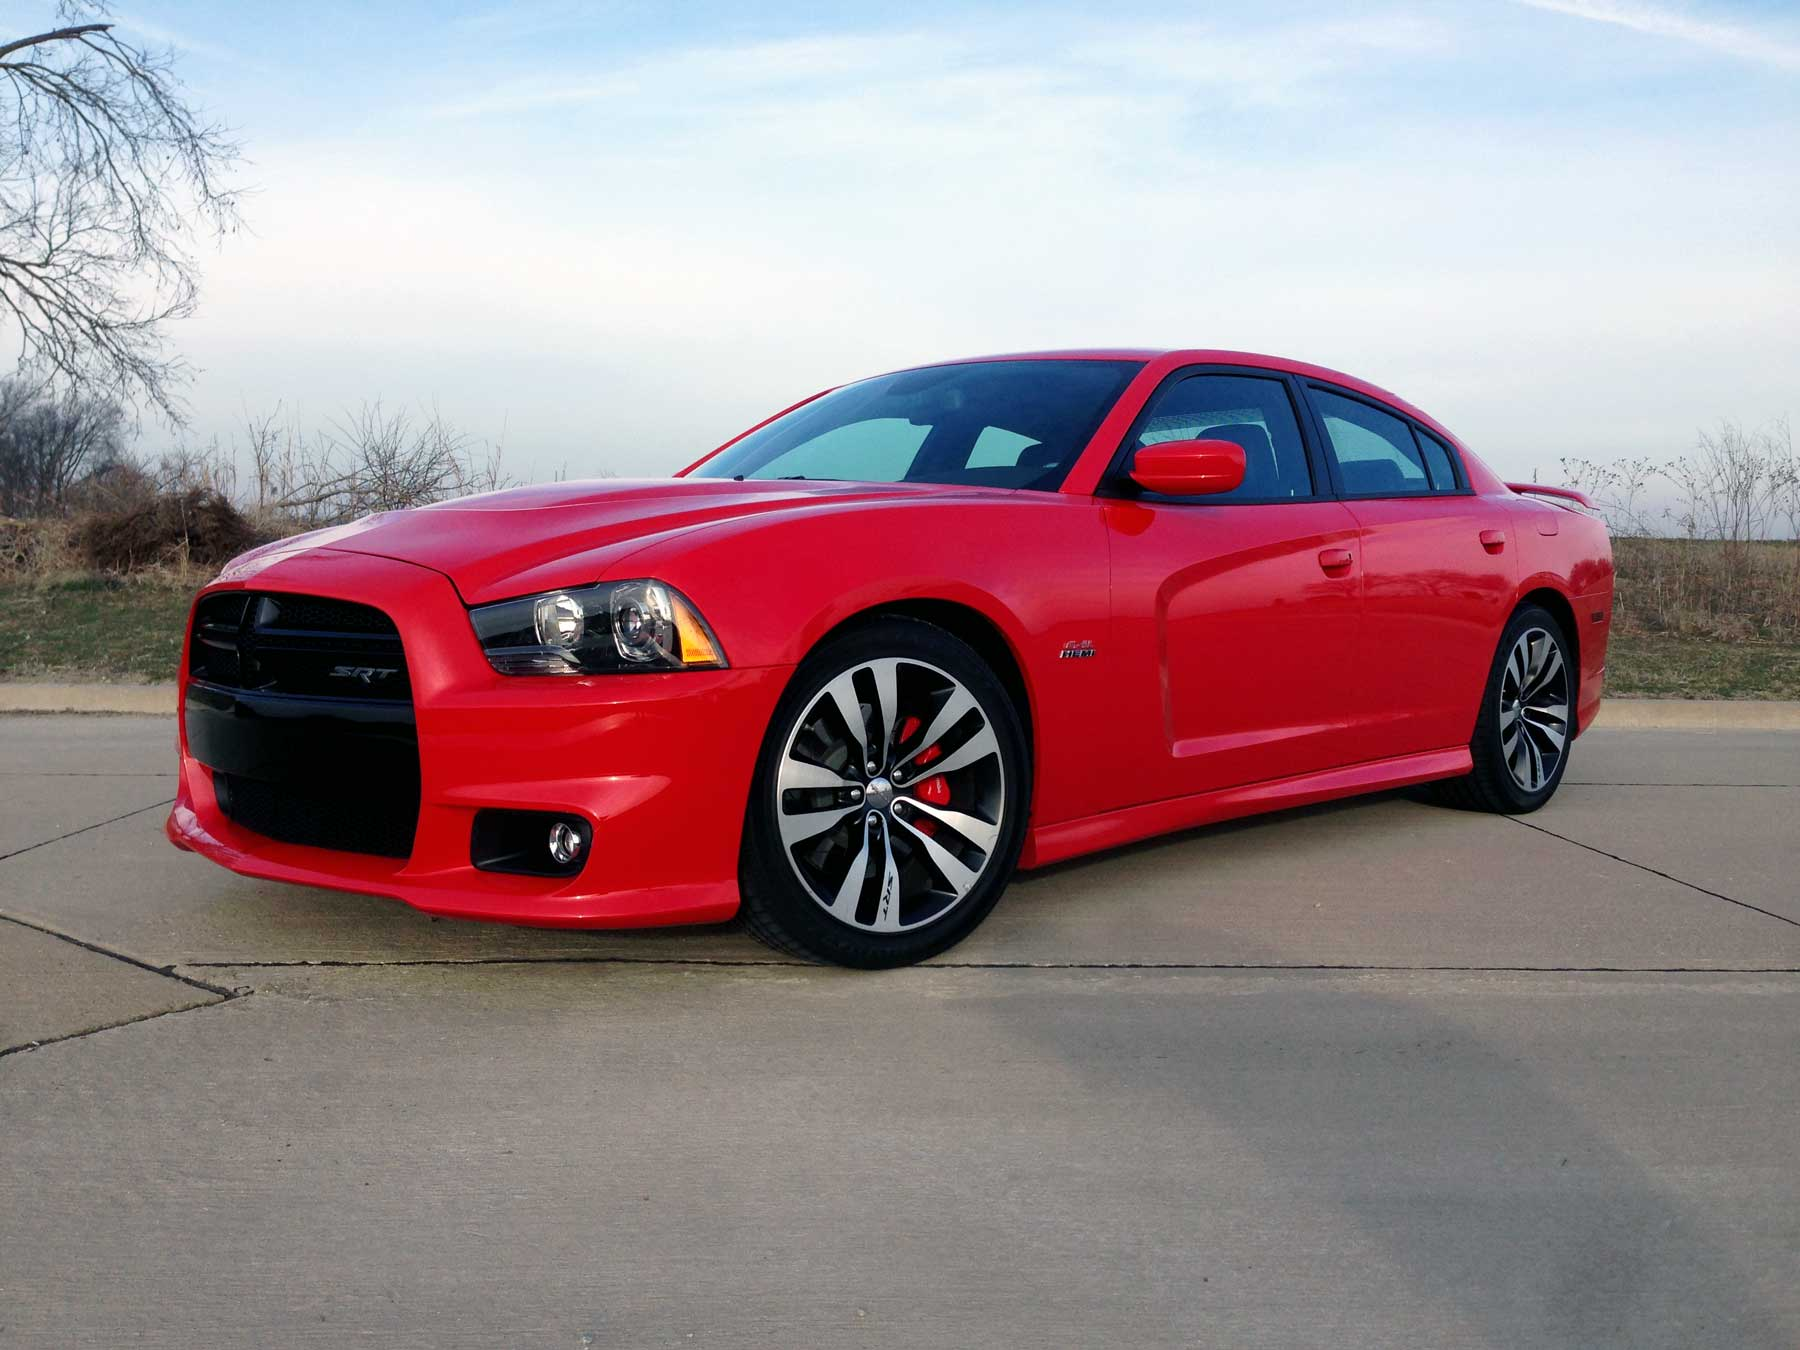 2014 SRT Charger by txGarage